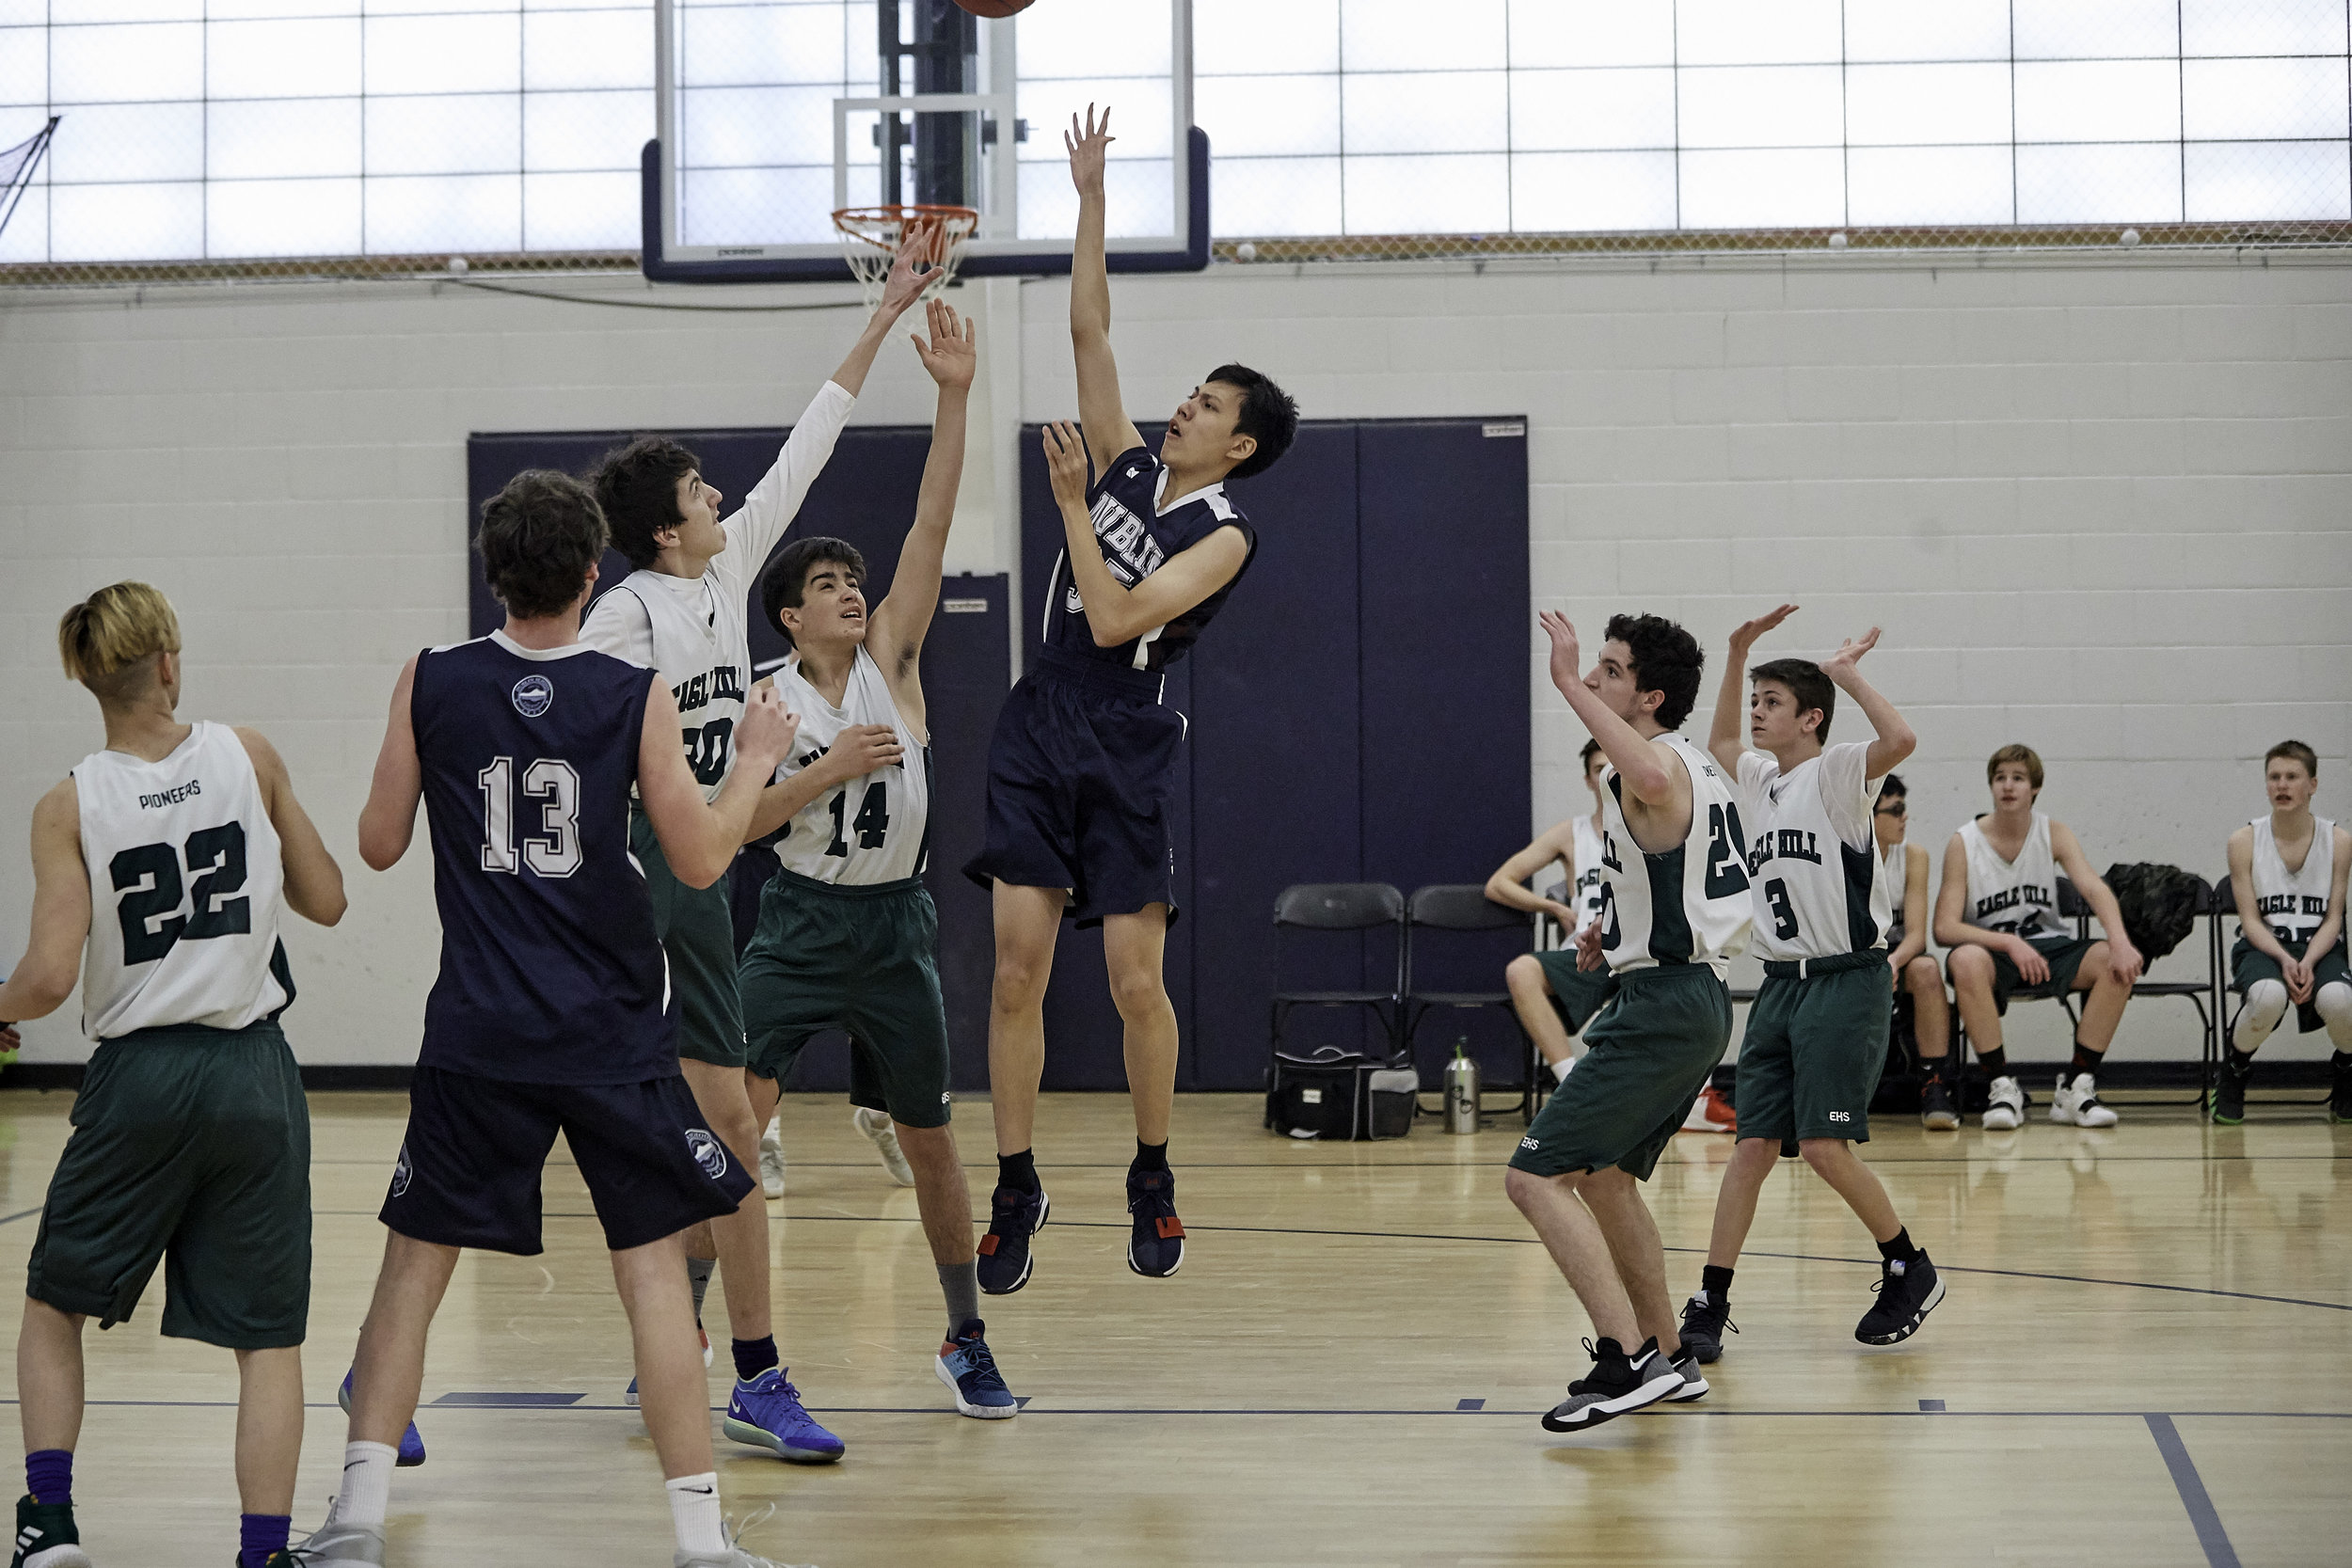 Boys Varsity Basketball vs. Eagle Hill School JV at RVAL Tournament - February 11, 2019 - 167744.jpg